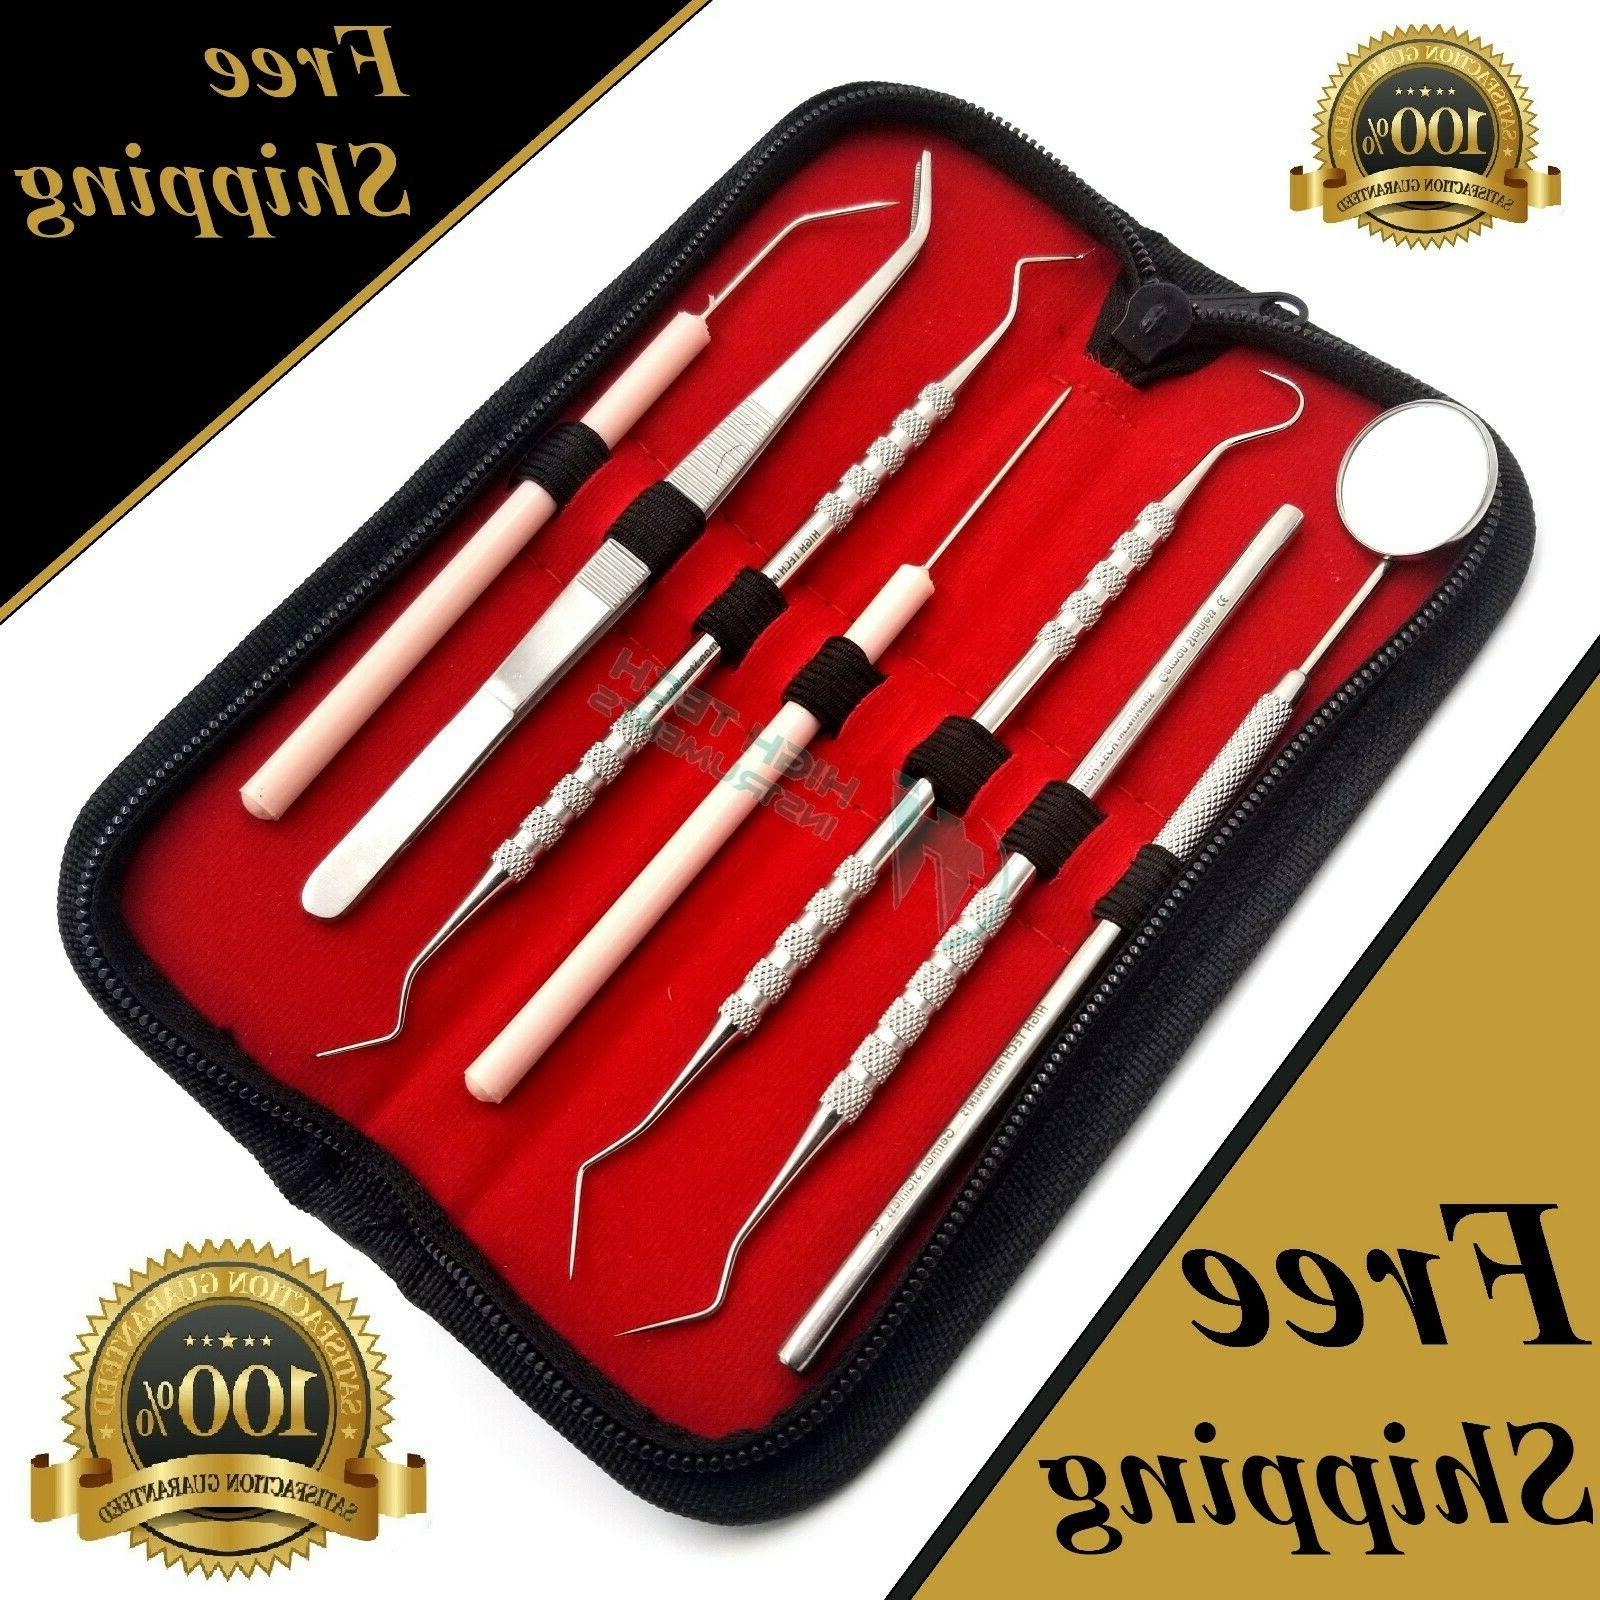 GERMAN Dental Scaler Pick Stainless Steel Tools with Inspect